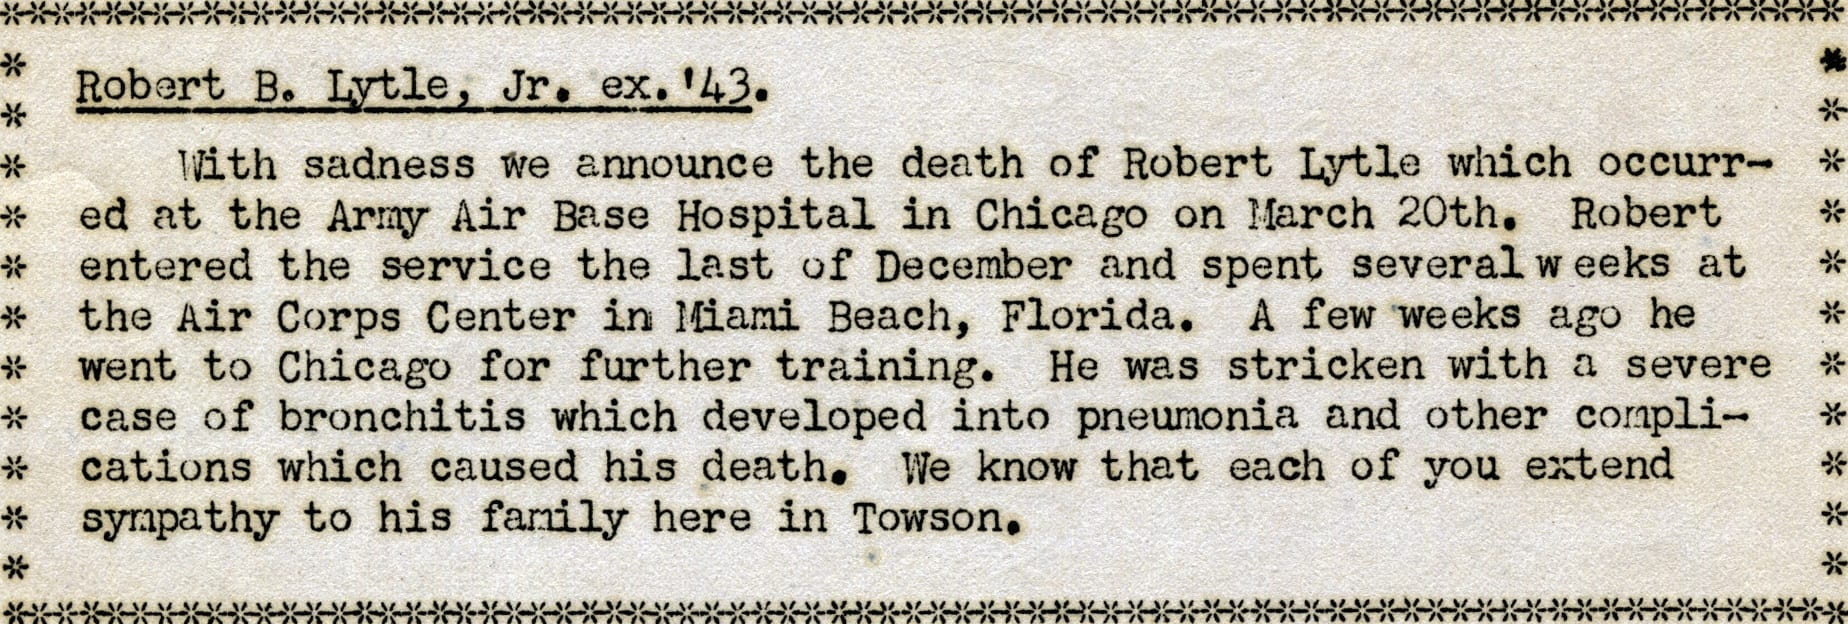 Text from STC Alumni Newsletter, March 1943. Robert B. Lytle, Jr. ex. '43. With sadness we announce the death of Robert Lytle which occurred at the Army Air Base Hospital in Chicago on March 20th. Robert entered the service the last of December and spent several weeks at the Air Corps Center in Miami Beach, Florida. A few weeks ago he went to Chicago for further training. He was stricken with a severe case of bronchitis which developed into pneumonia and other complications which caused his death. We know that each of you extend sympathy to his family here in Towson.